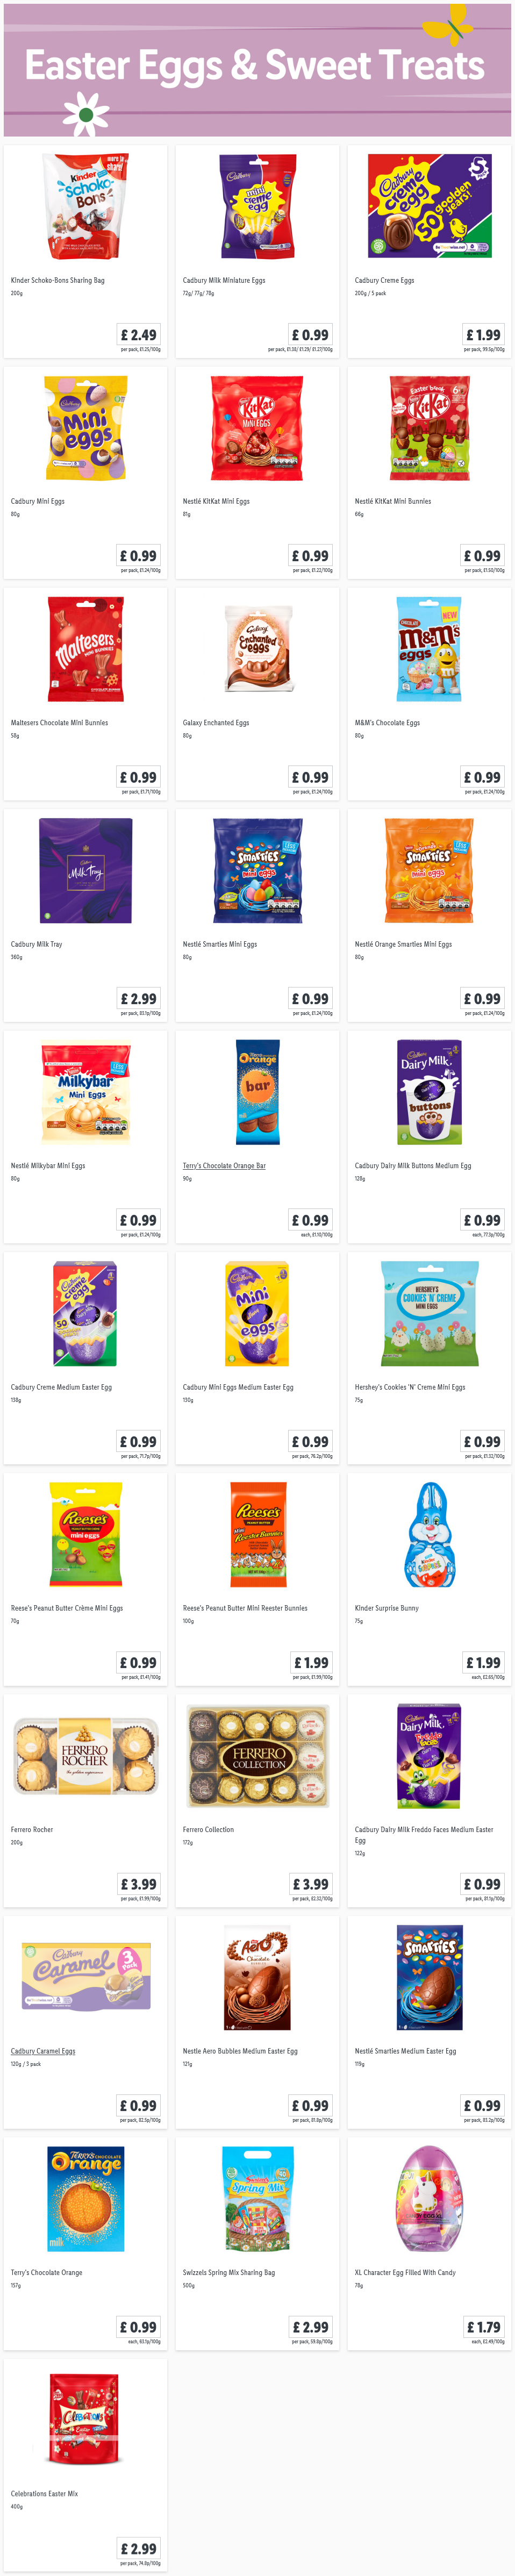 LIDL Easter Eggs Sweet Treats Offers From Thursday, 25th February 2021